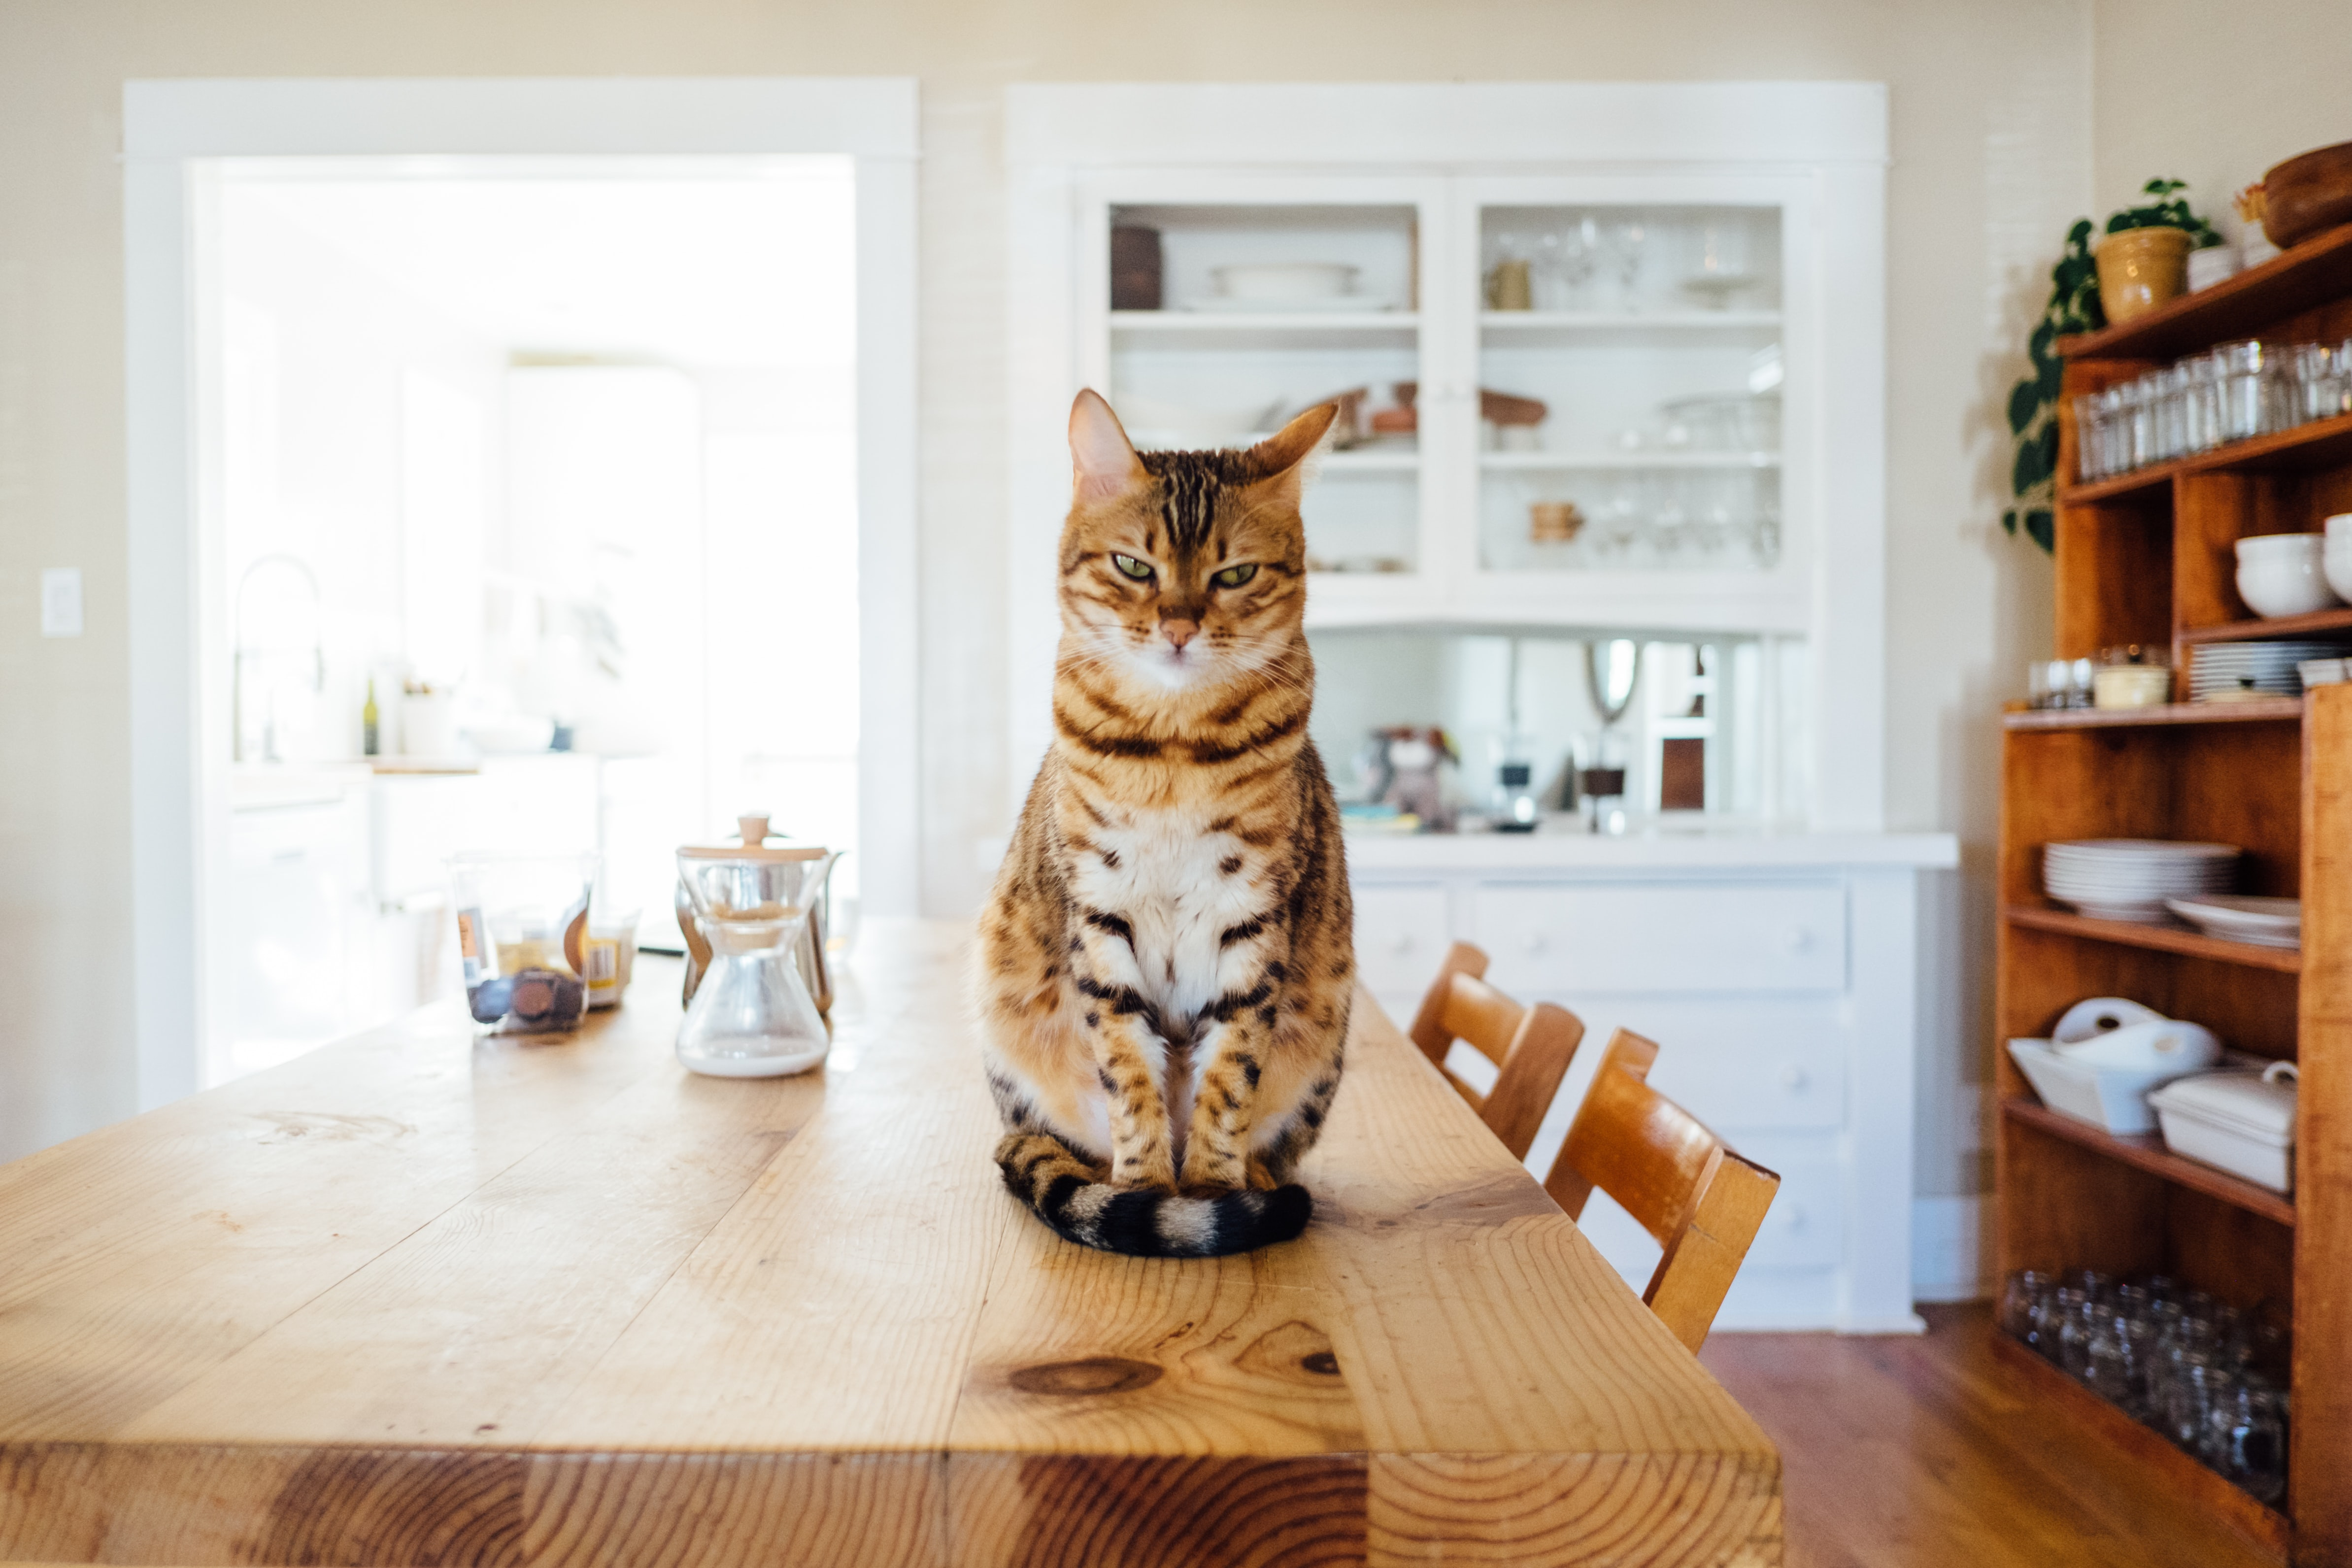 Striped cat sitting on a wood dining table in a modern, brightly lit home